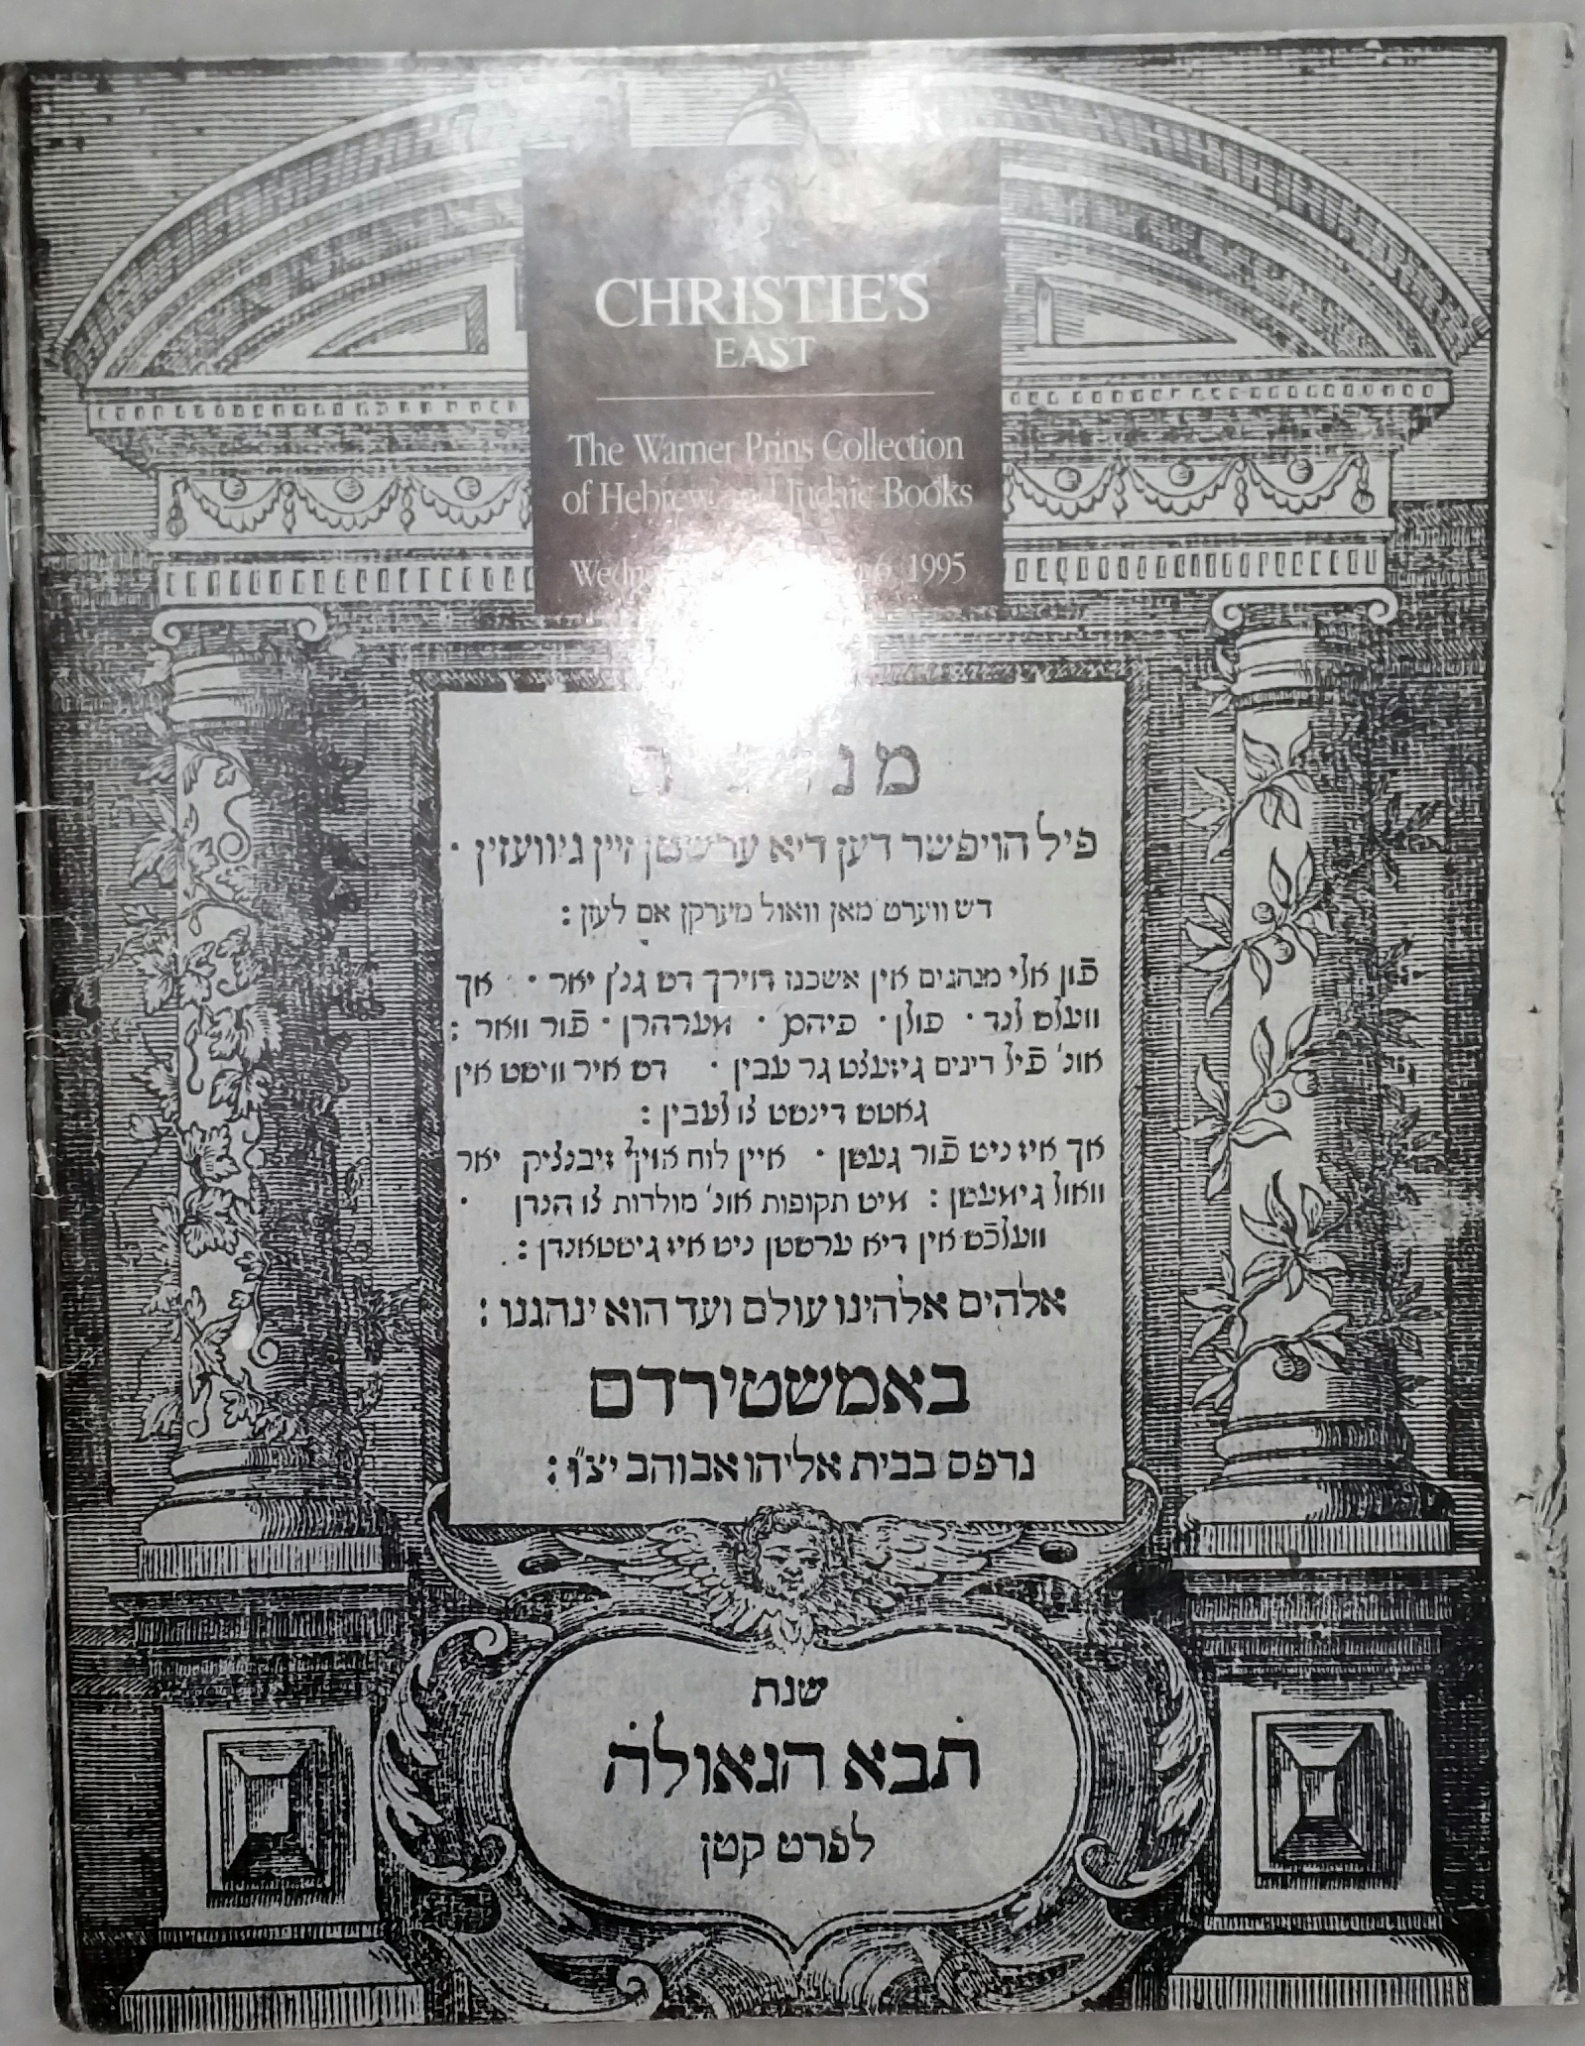 Image for The Warner Prins Collection of Hebrew and Judaic Books (Christie's East Auction Catalogue for Wednesday, December 6, 1995)